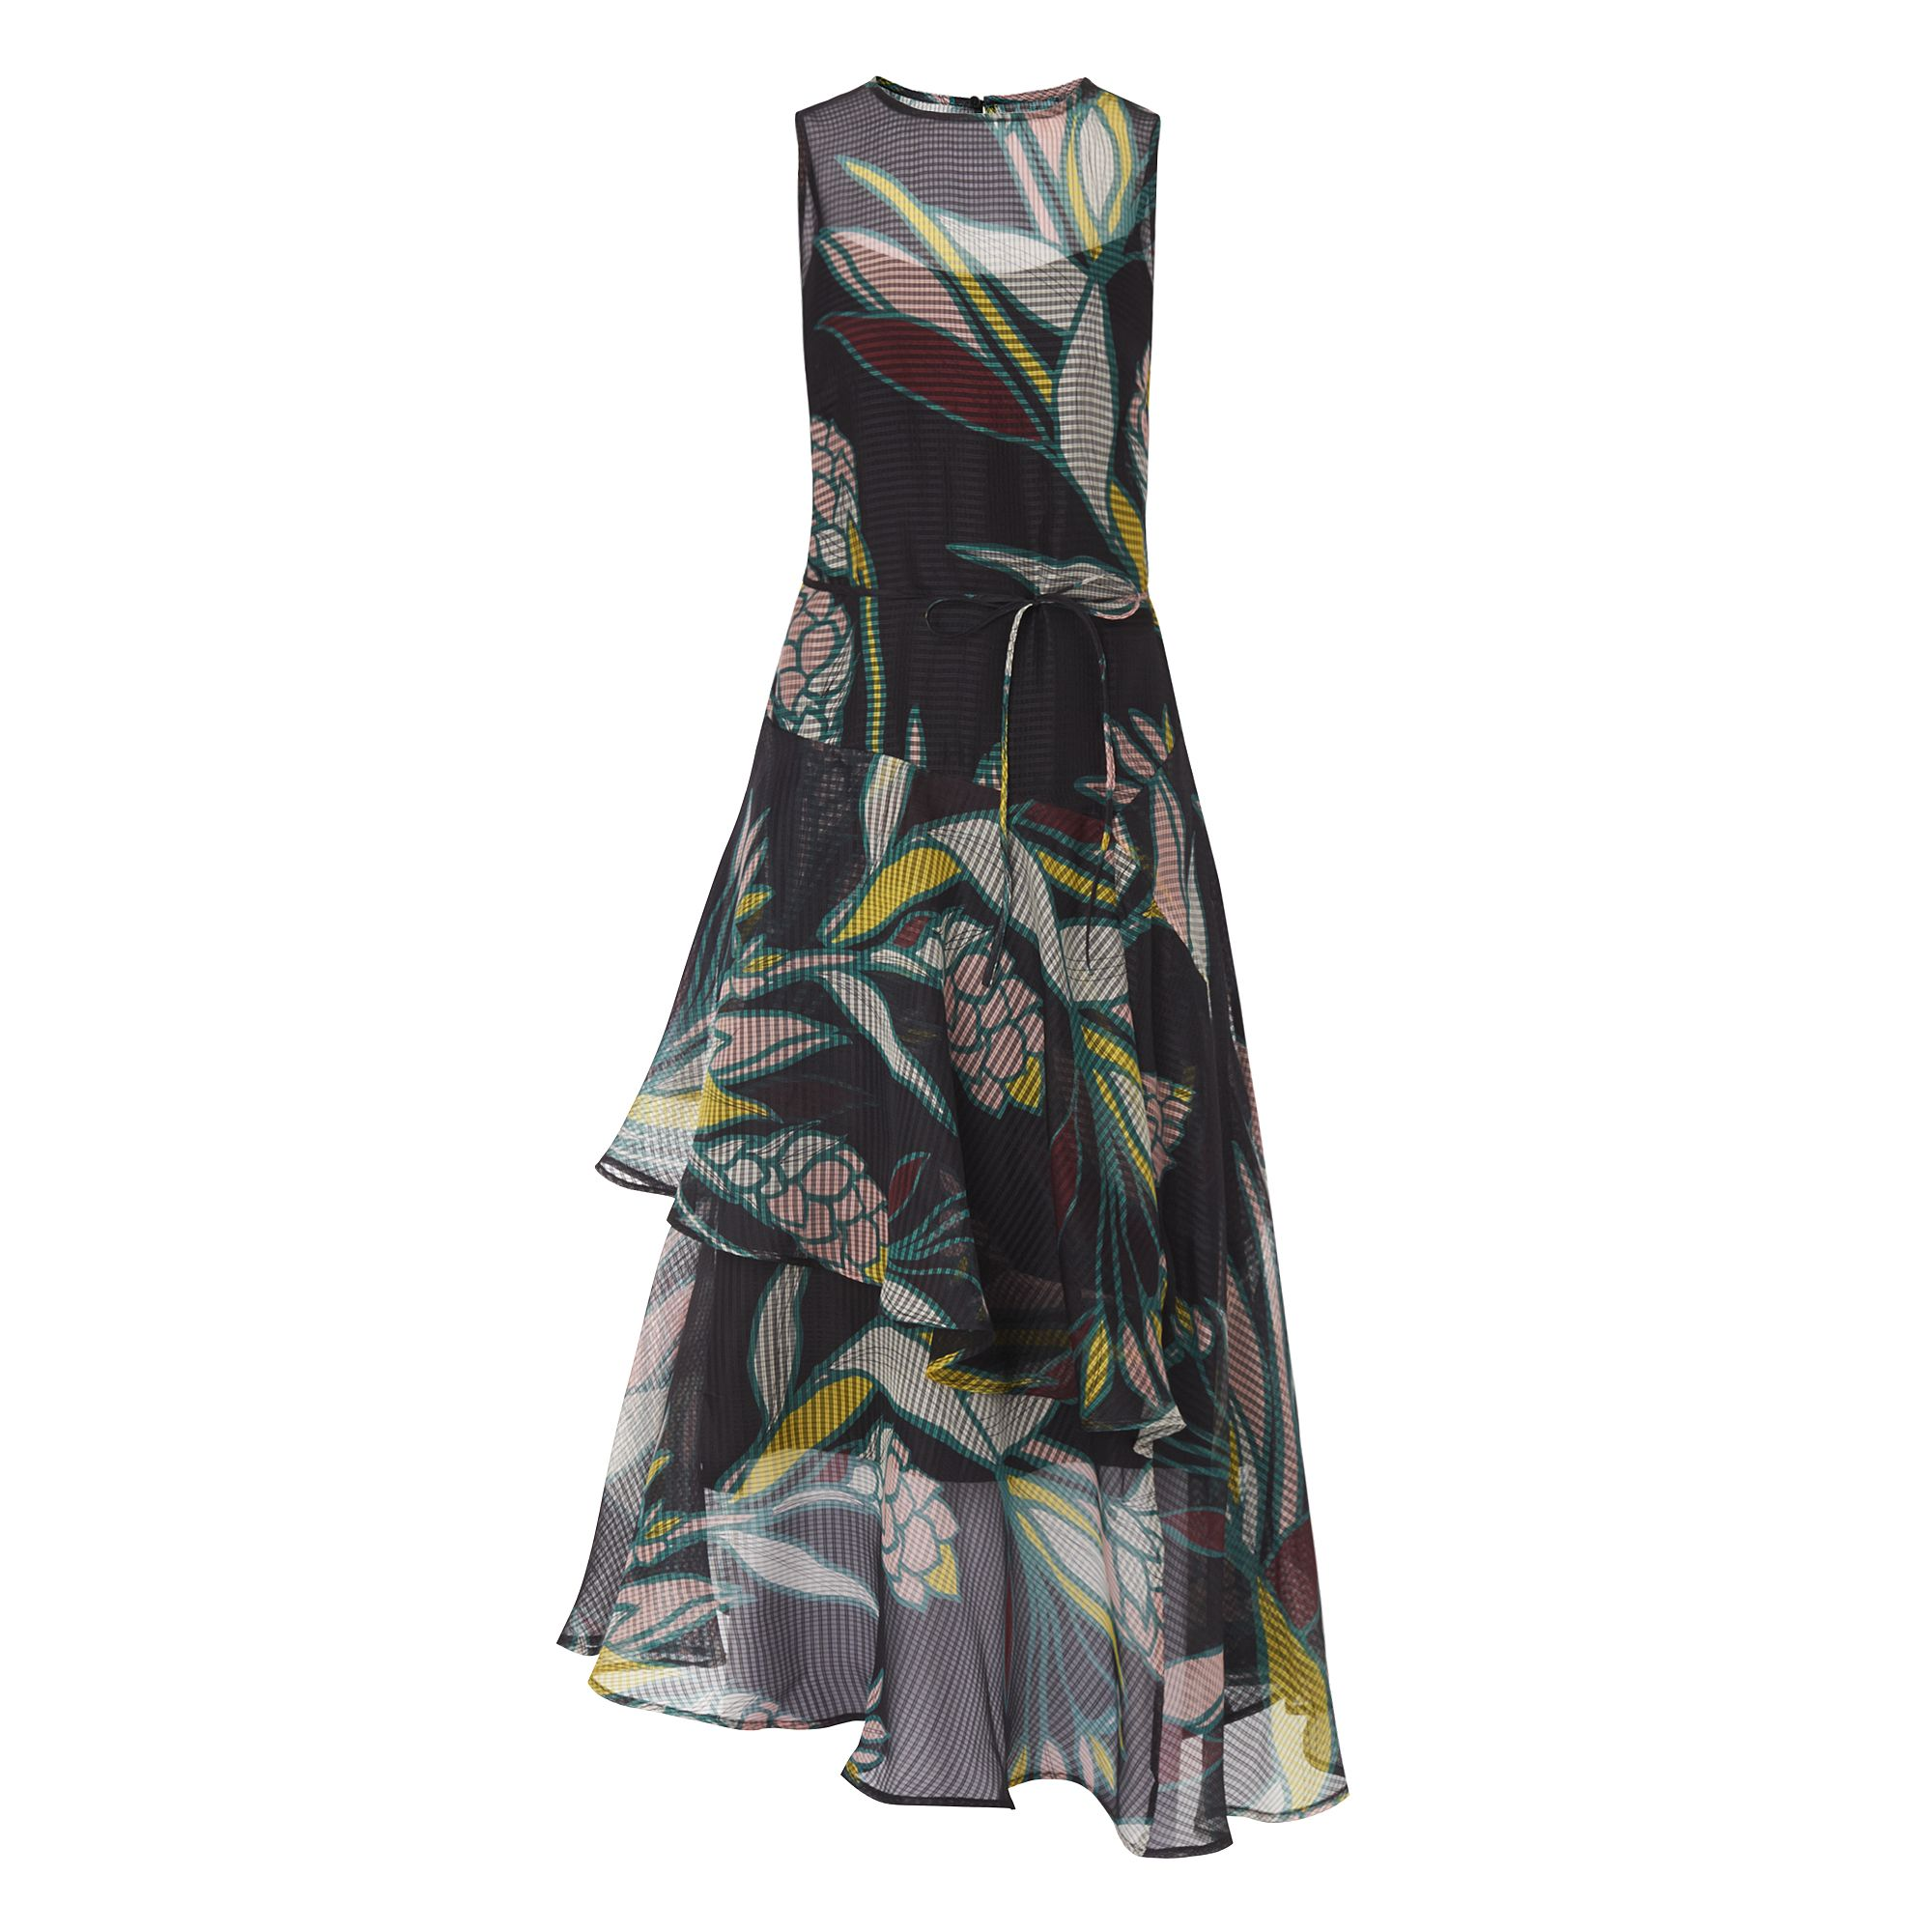 L.K. Bennett Kalia Geo Flowers Dress, Multi-Coloured